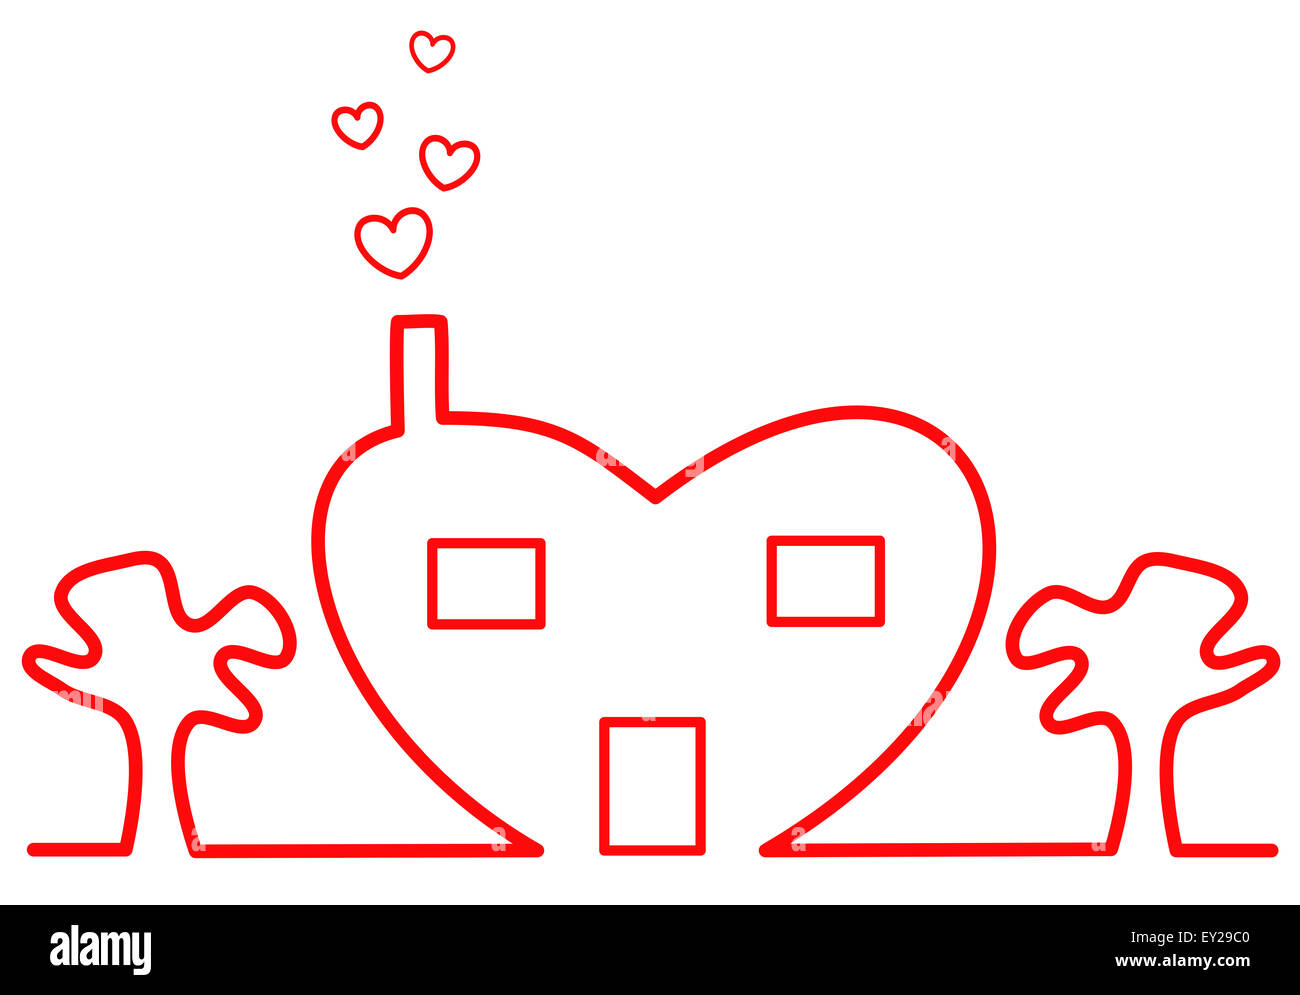 heart house concept illustration - Stock Image